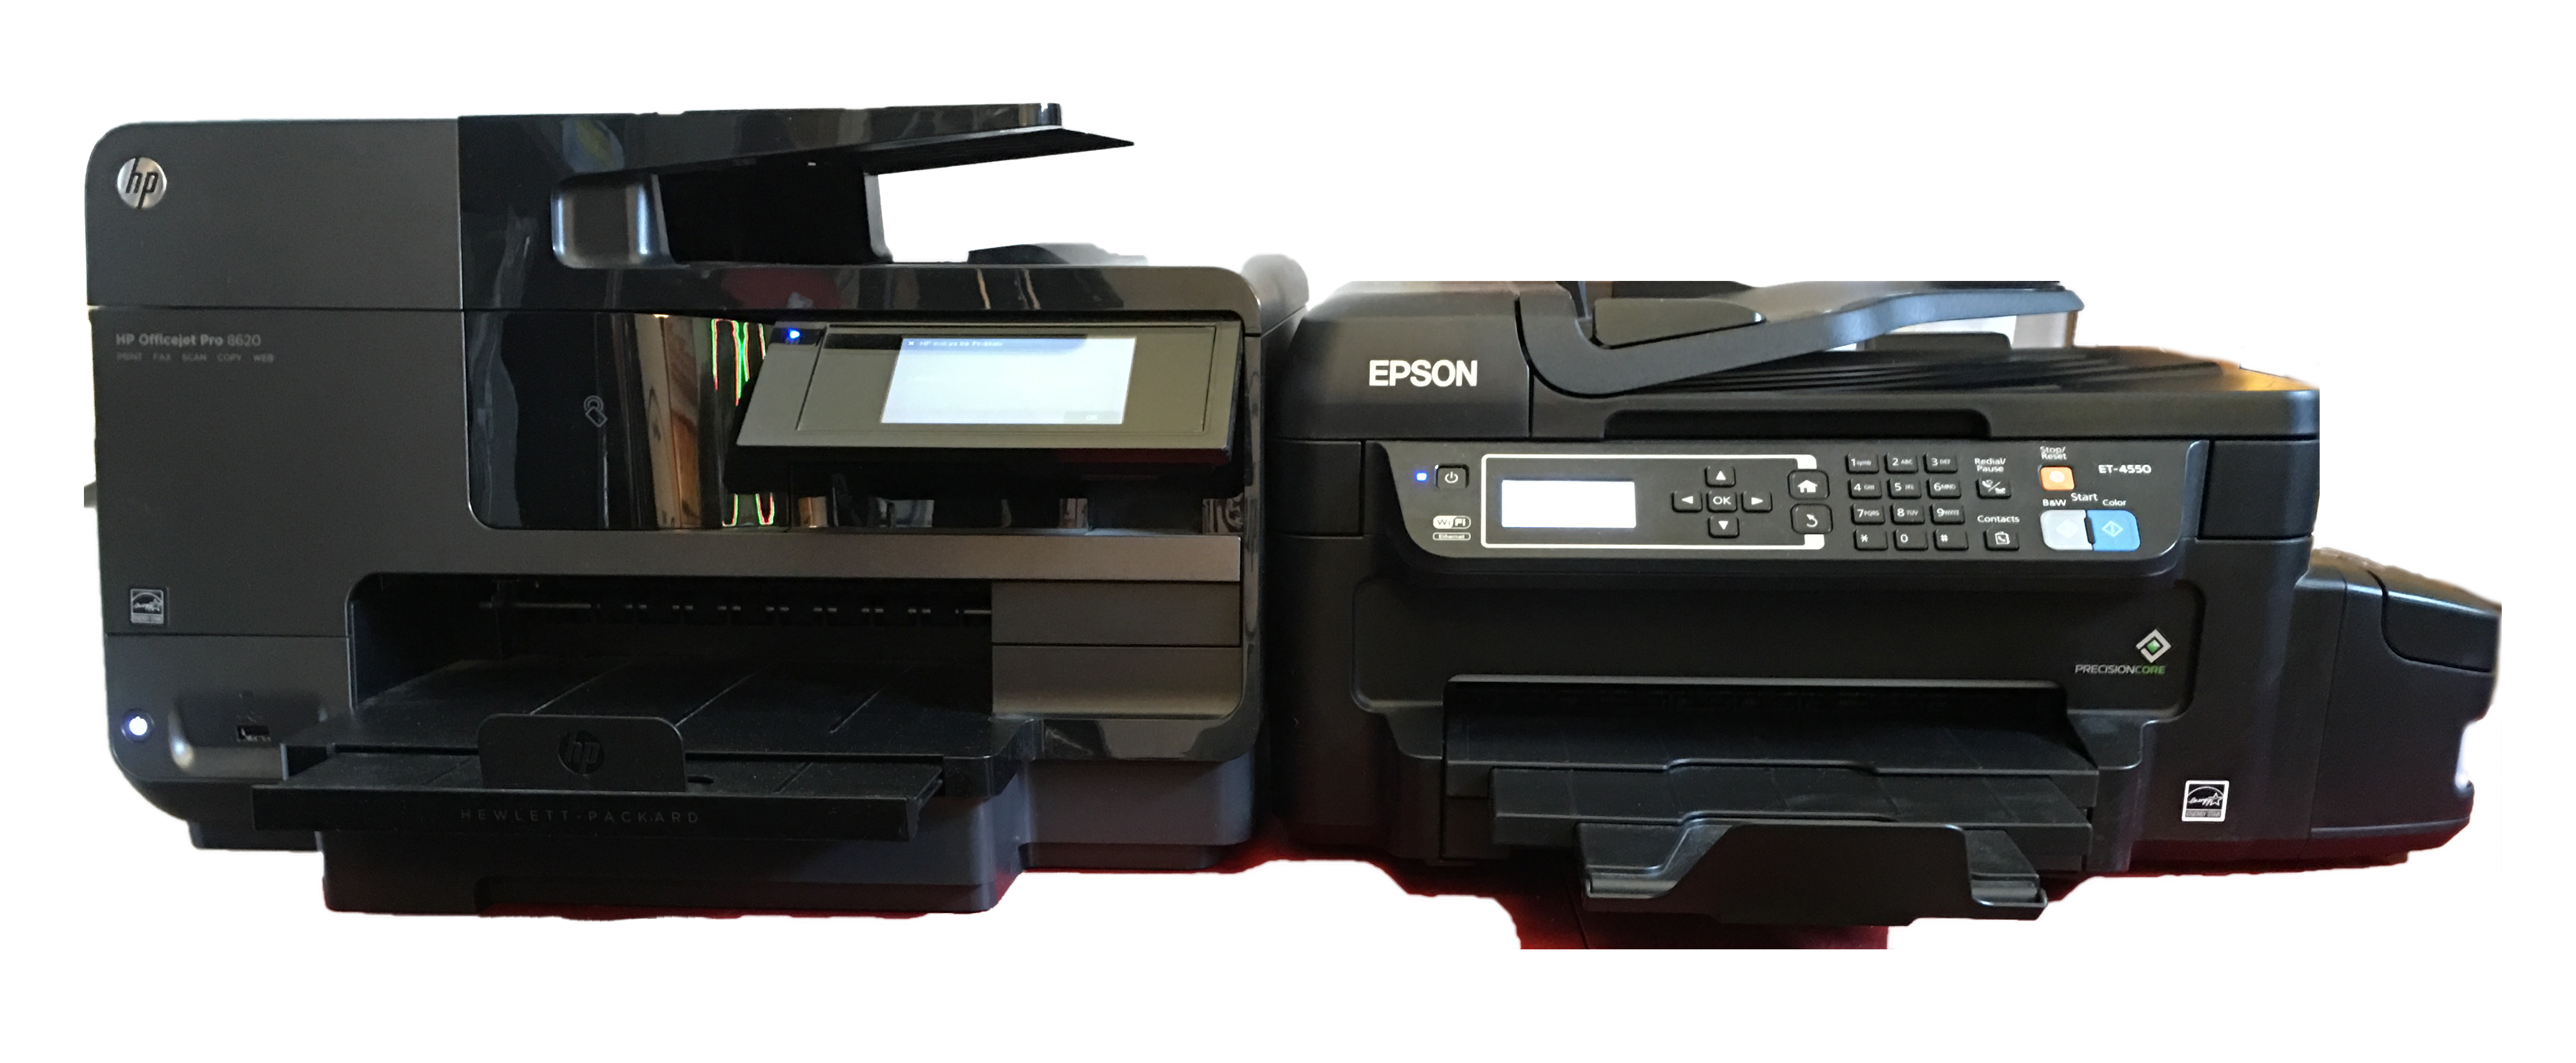 HP Officejet Pro 8620 (left) and an Epson WorkForce ET-4550 (right)